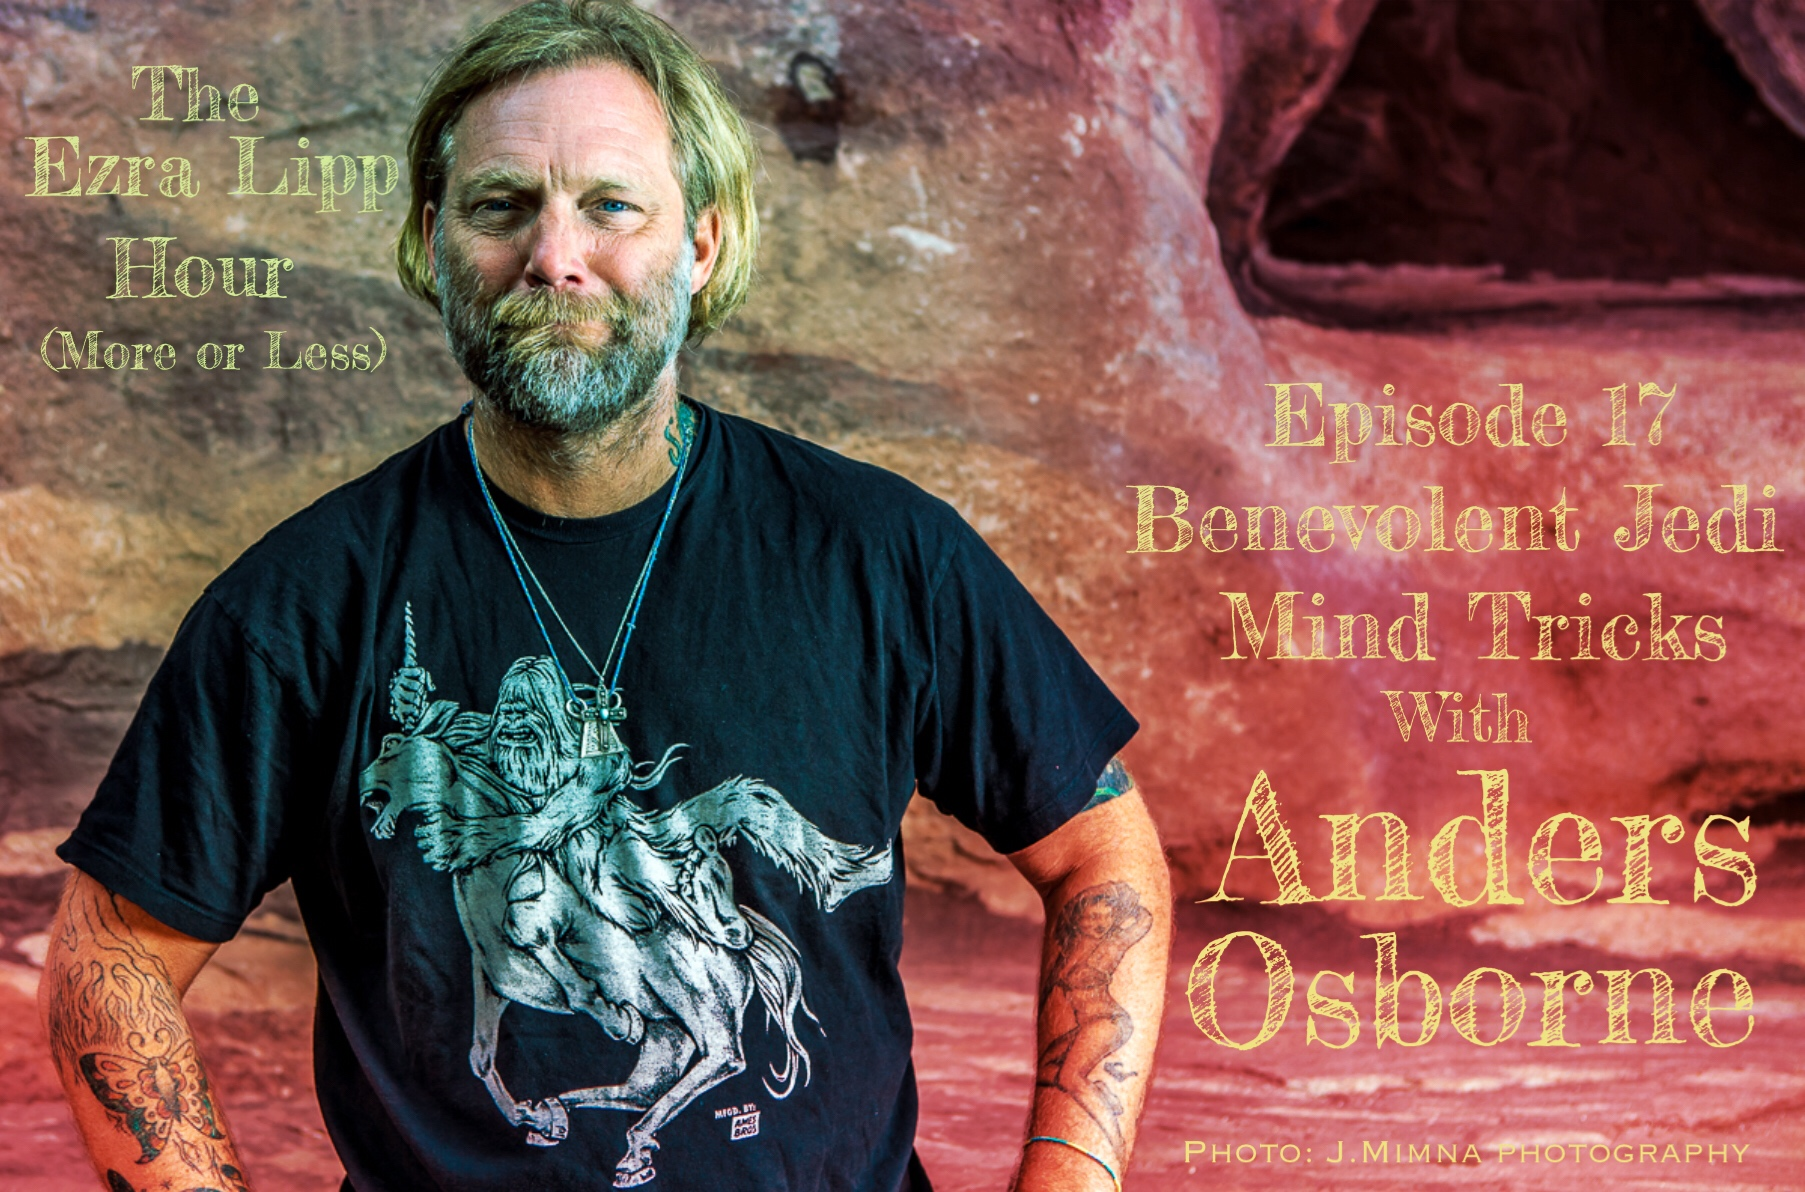 Anders Osborne J.Mimna Photography Ezra Lipp Hour (More or Less) podcast interview 17 Hou.JPG